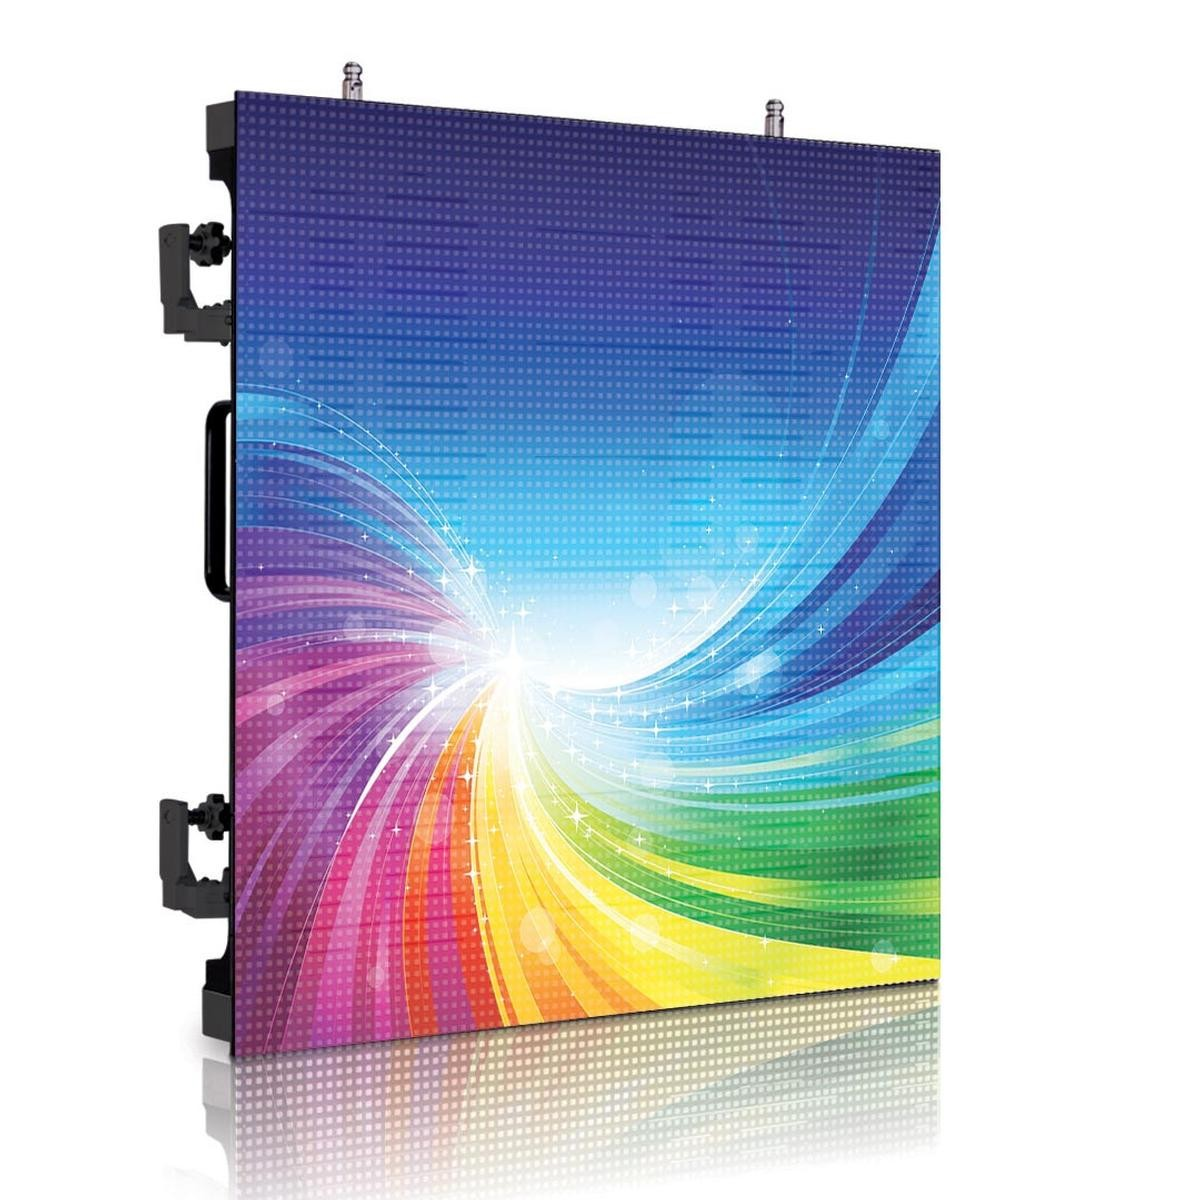 P5 960*960mm Die-casting Aluminum cabinet  Waterproof Outdoor Fixed LED Display 5000cd/㎡ brightness